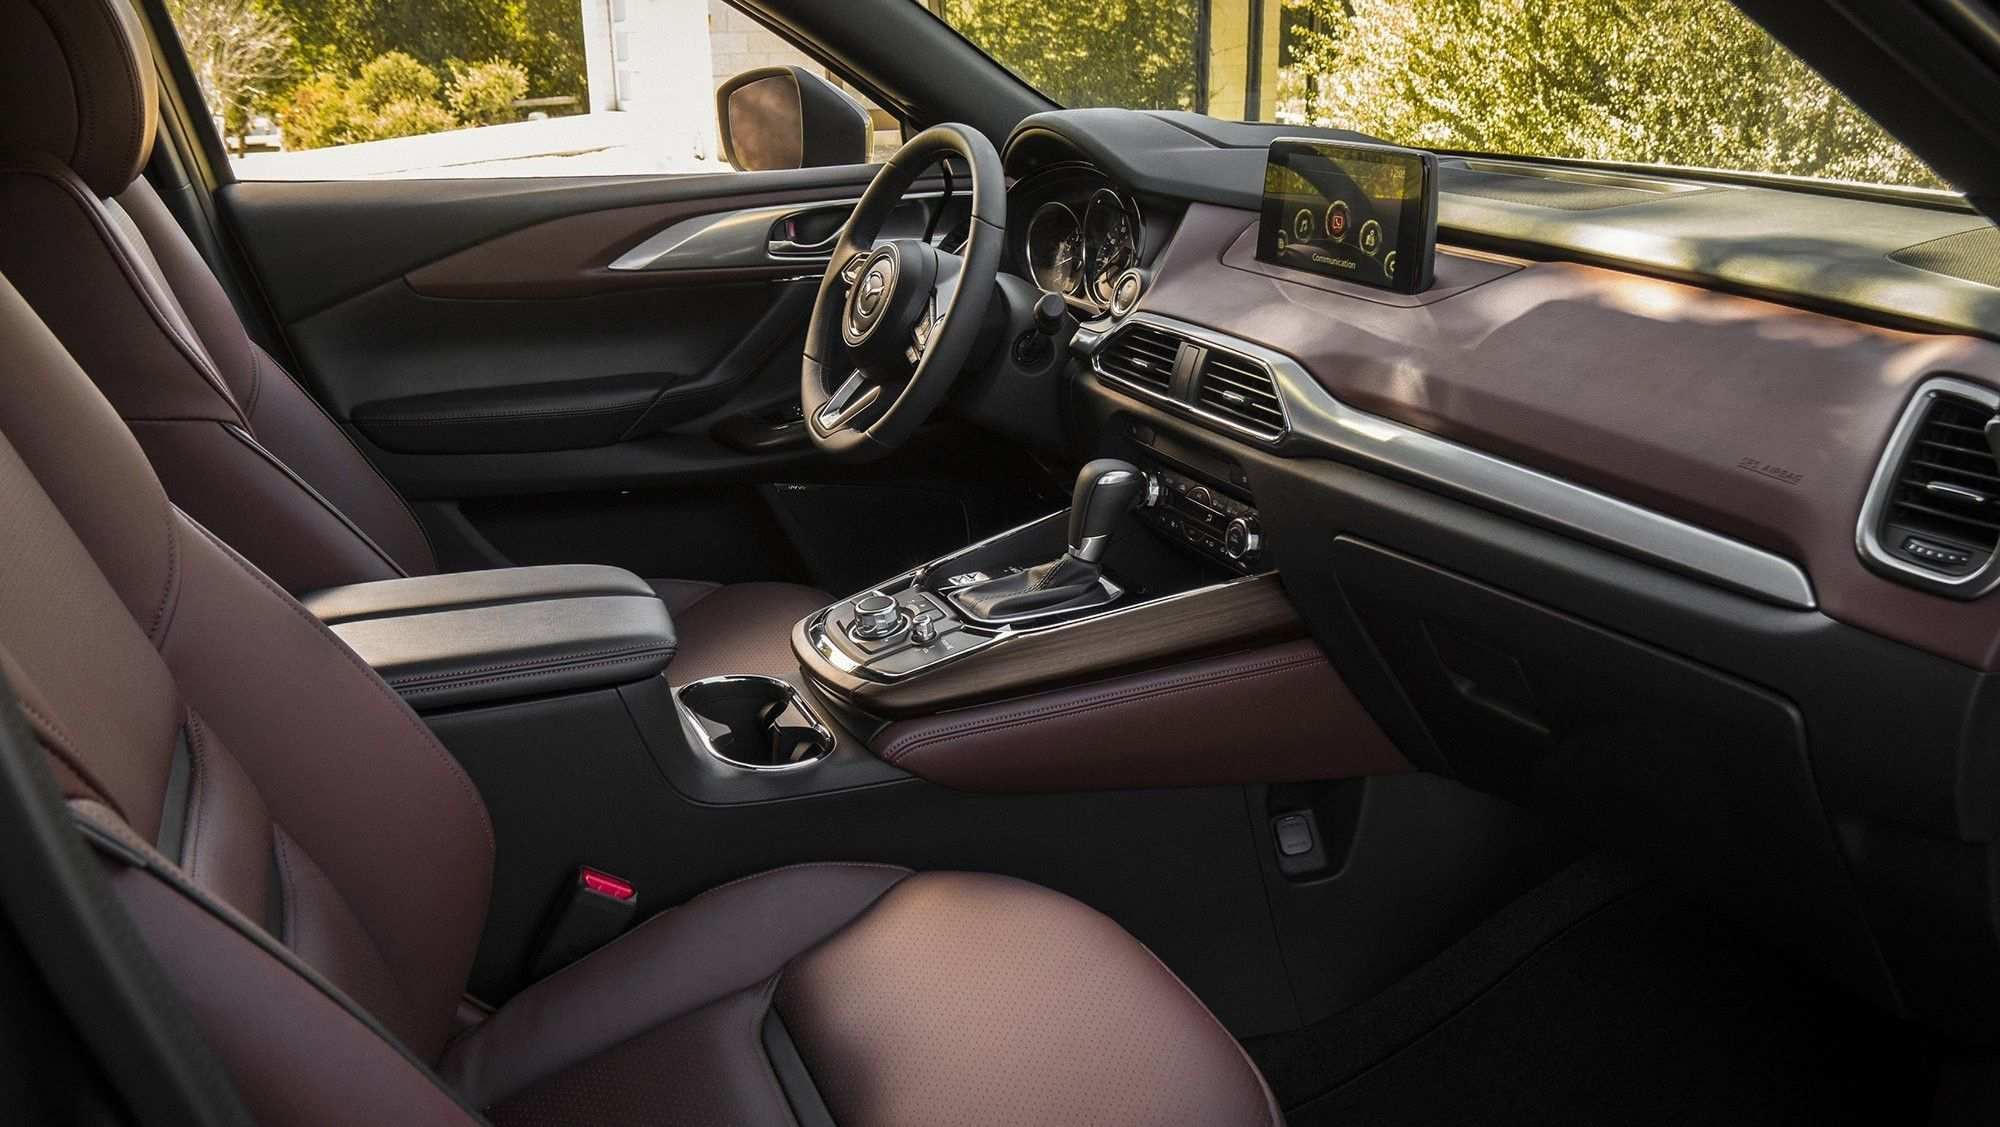 73 Best Review 2020 Mazda CX 9s First Drive with 2020 Mazda CX 9s